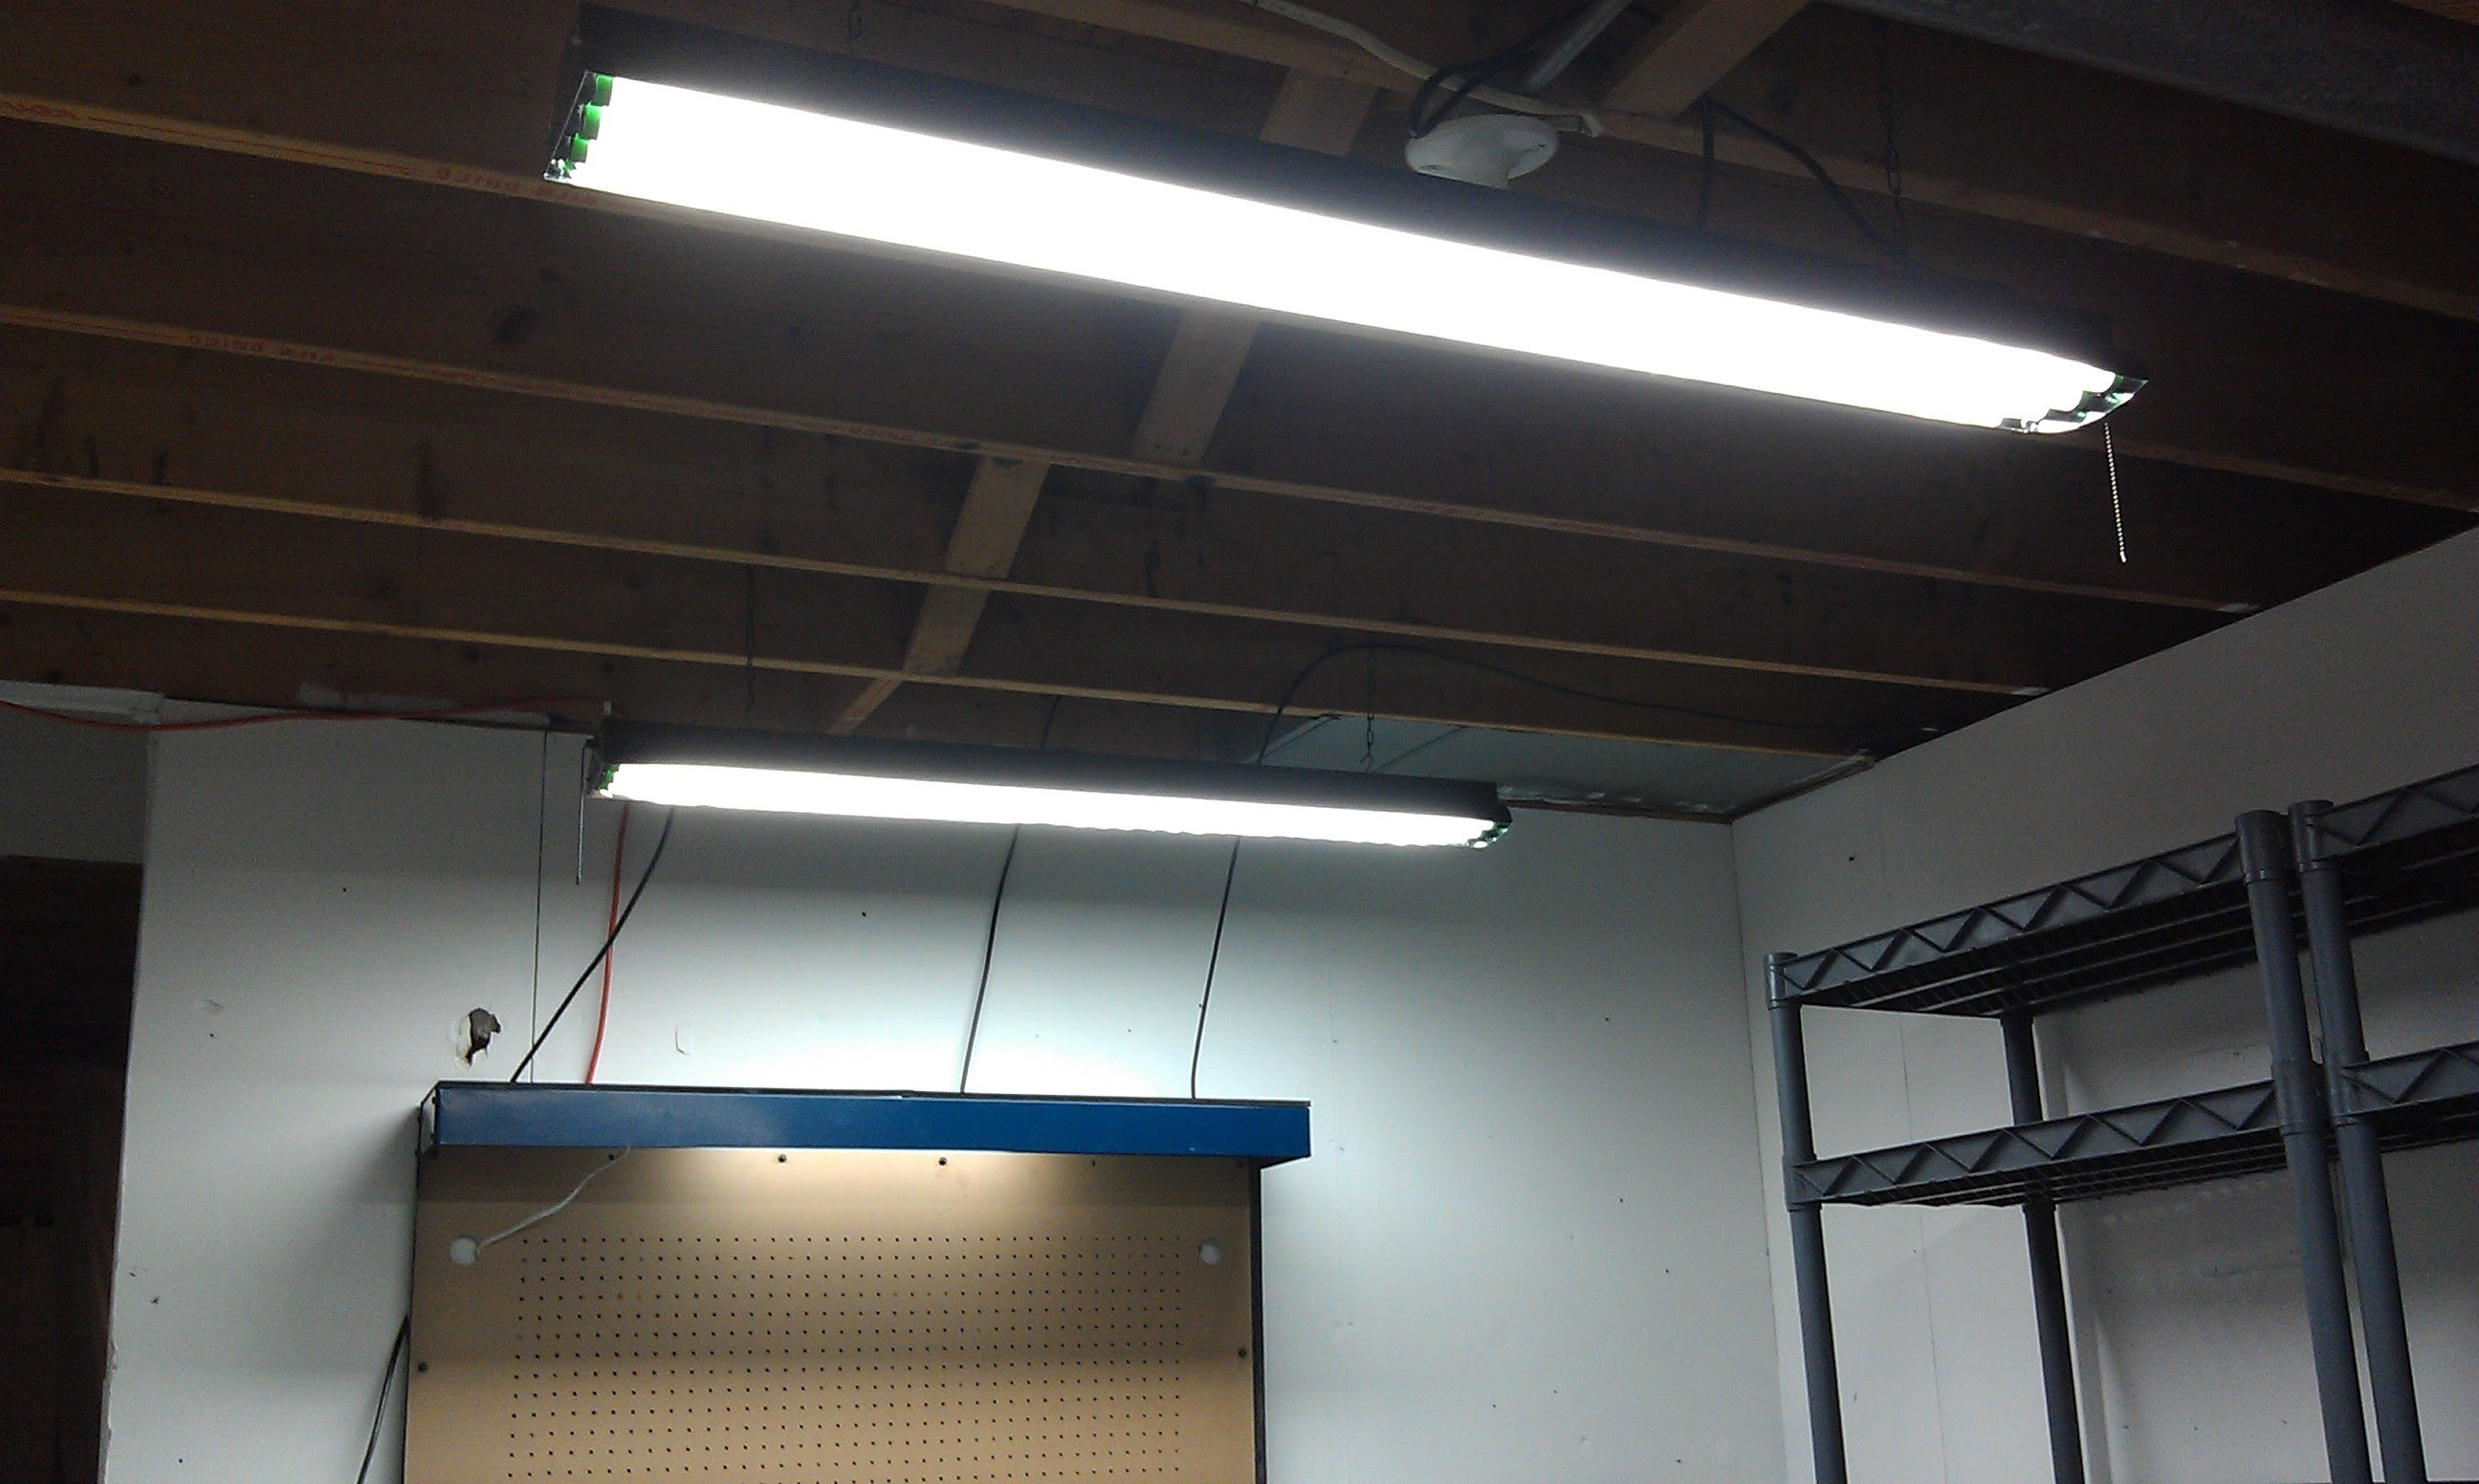 Outdoor Fluorescent Ceiling Lights Within Trendy Light : Modern Suspended Fluorescent Lighting Drop Ceiling Light (View 5 of 20)